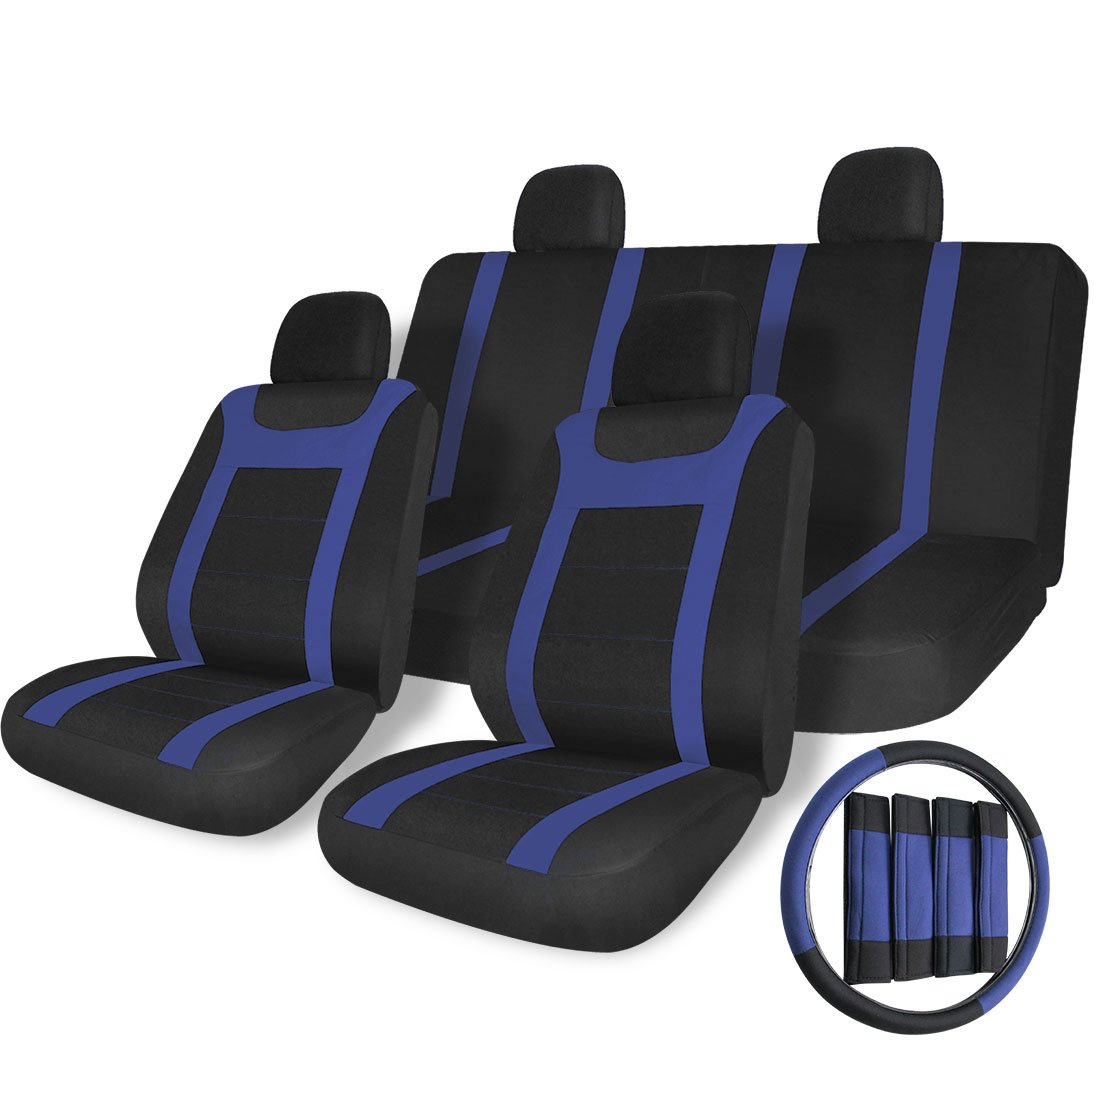 Copap 17pcs Universal SUV Car Seat Covers Mesh Fabric Seat Covers for Vehicles Autos Full Set Front Airbag Compatible 5 Headrest Covers 1 Steering Wheel Covers Black//Blue